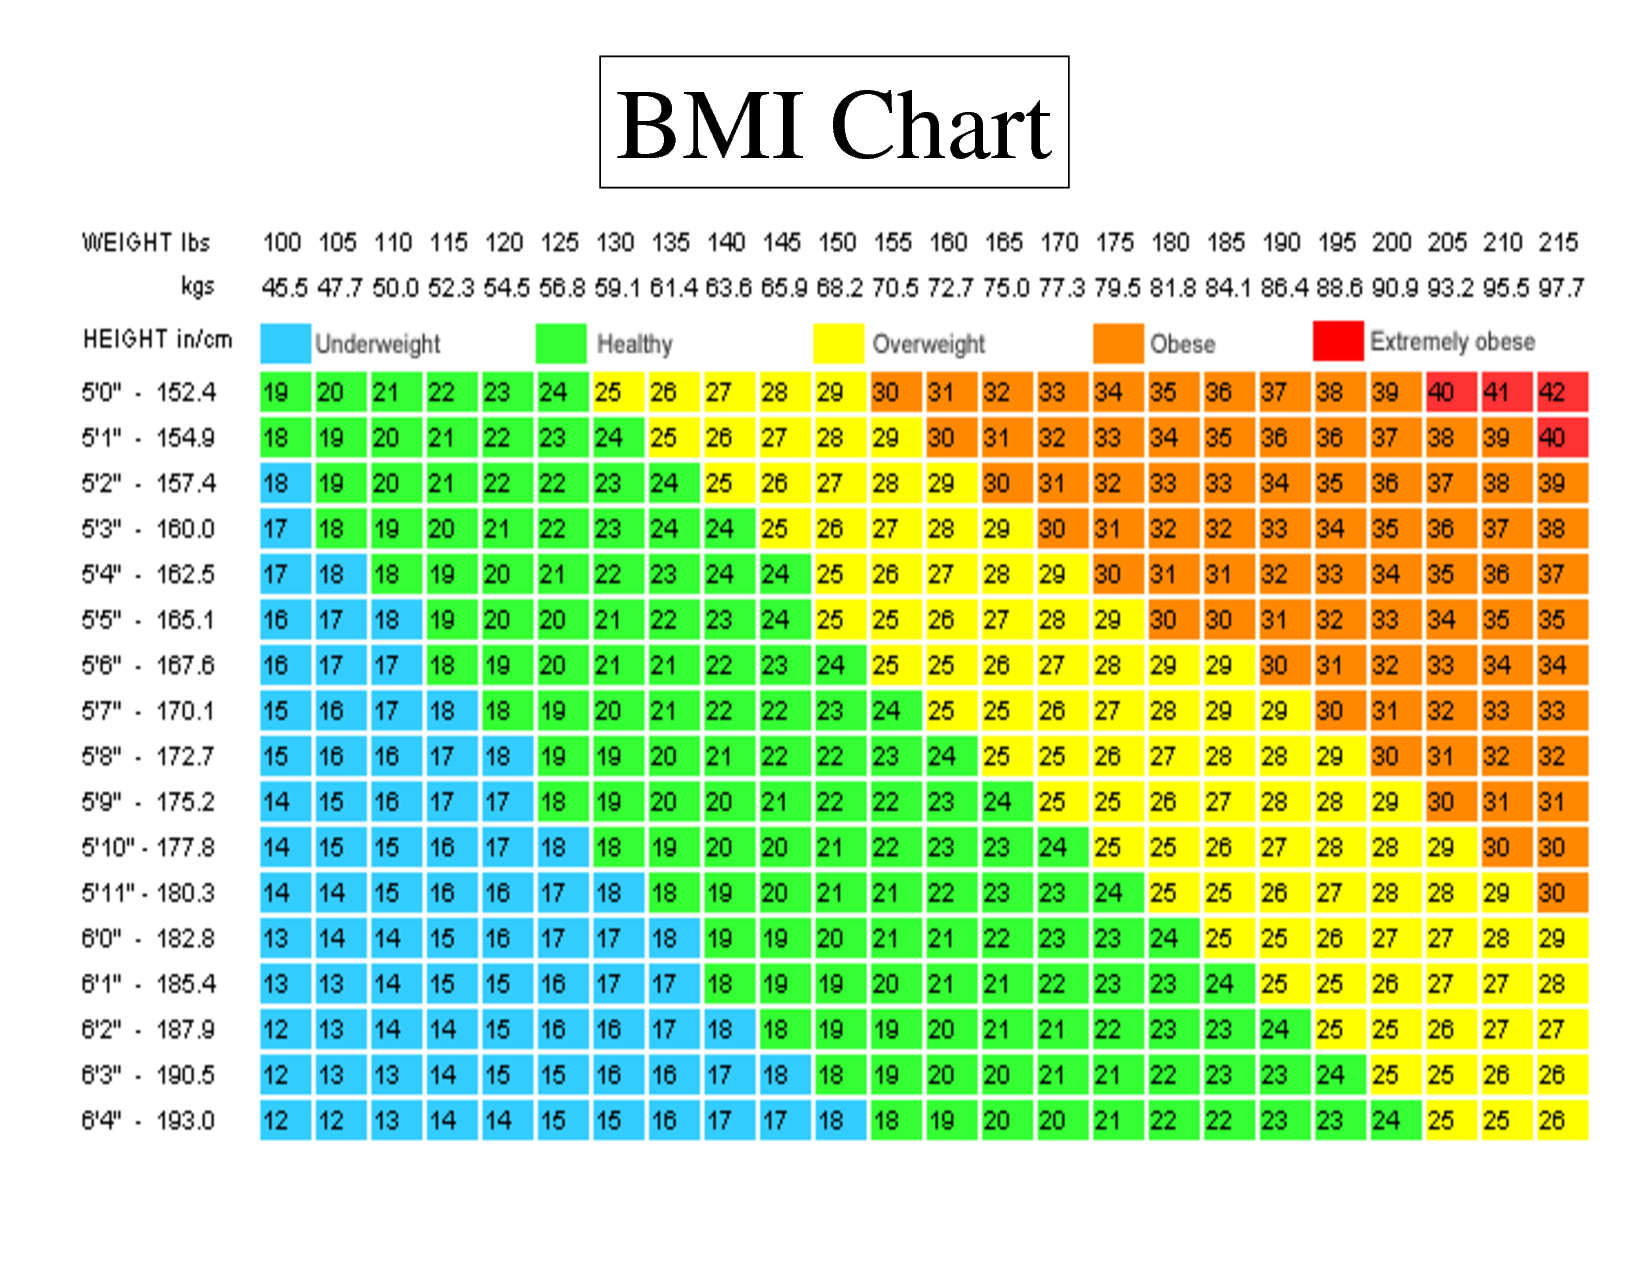 Body mass index bmi chart weight loss chart lost weight and body mass index bmi chart nvjuhfo Gallery